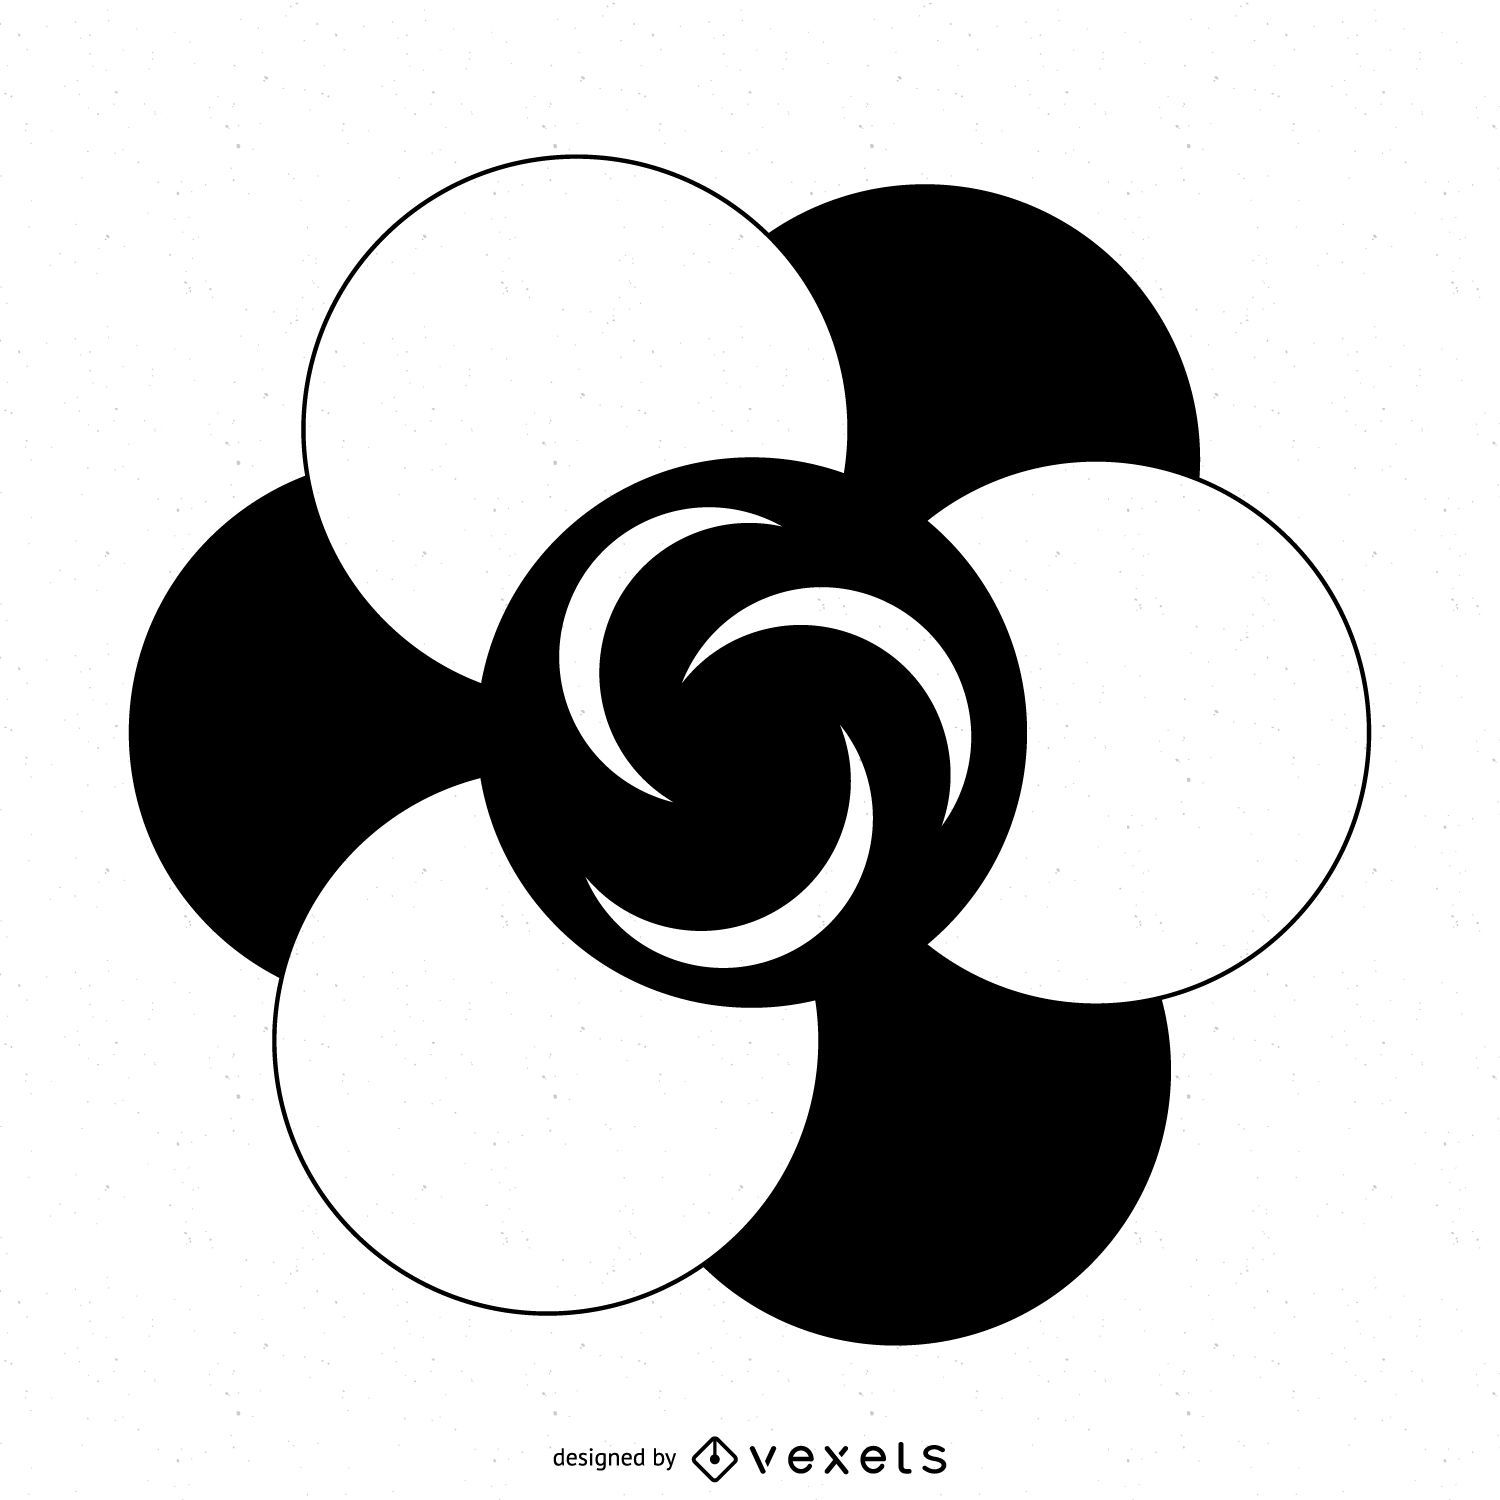 Flower crop circle drawing - Vector download